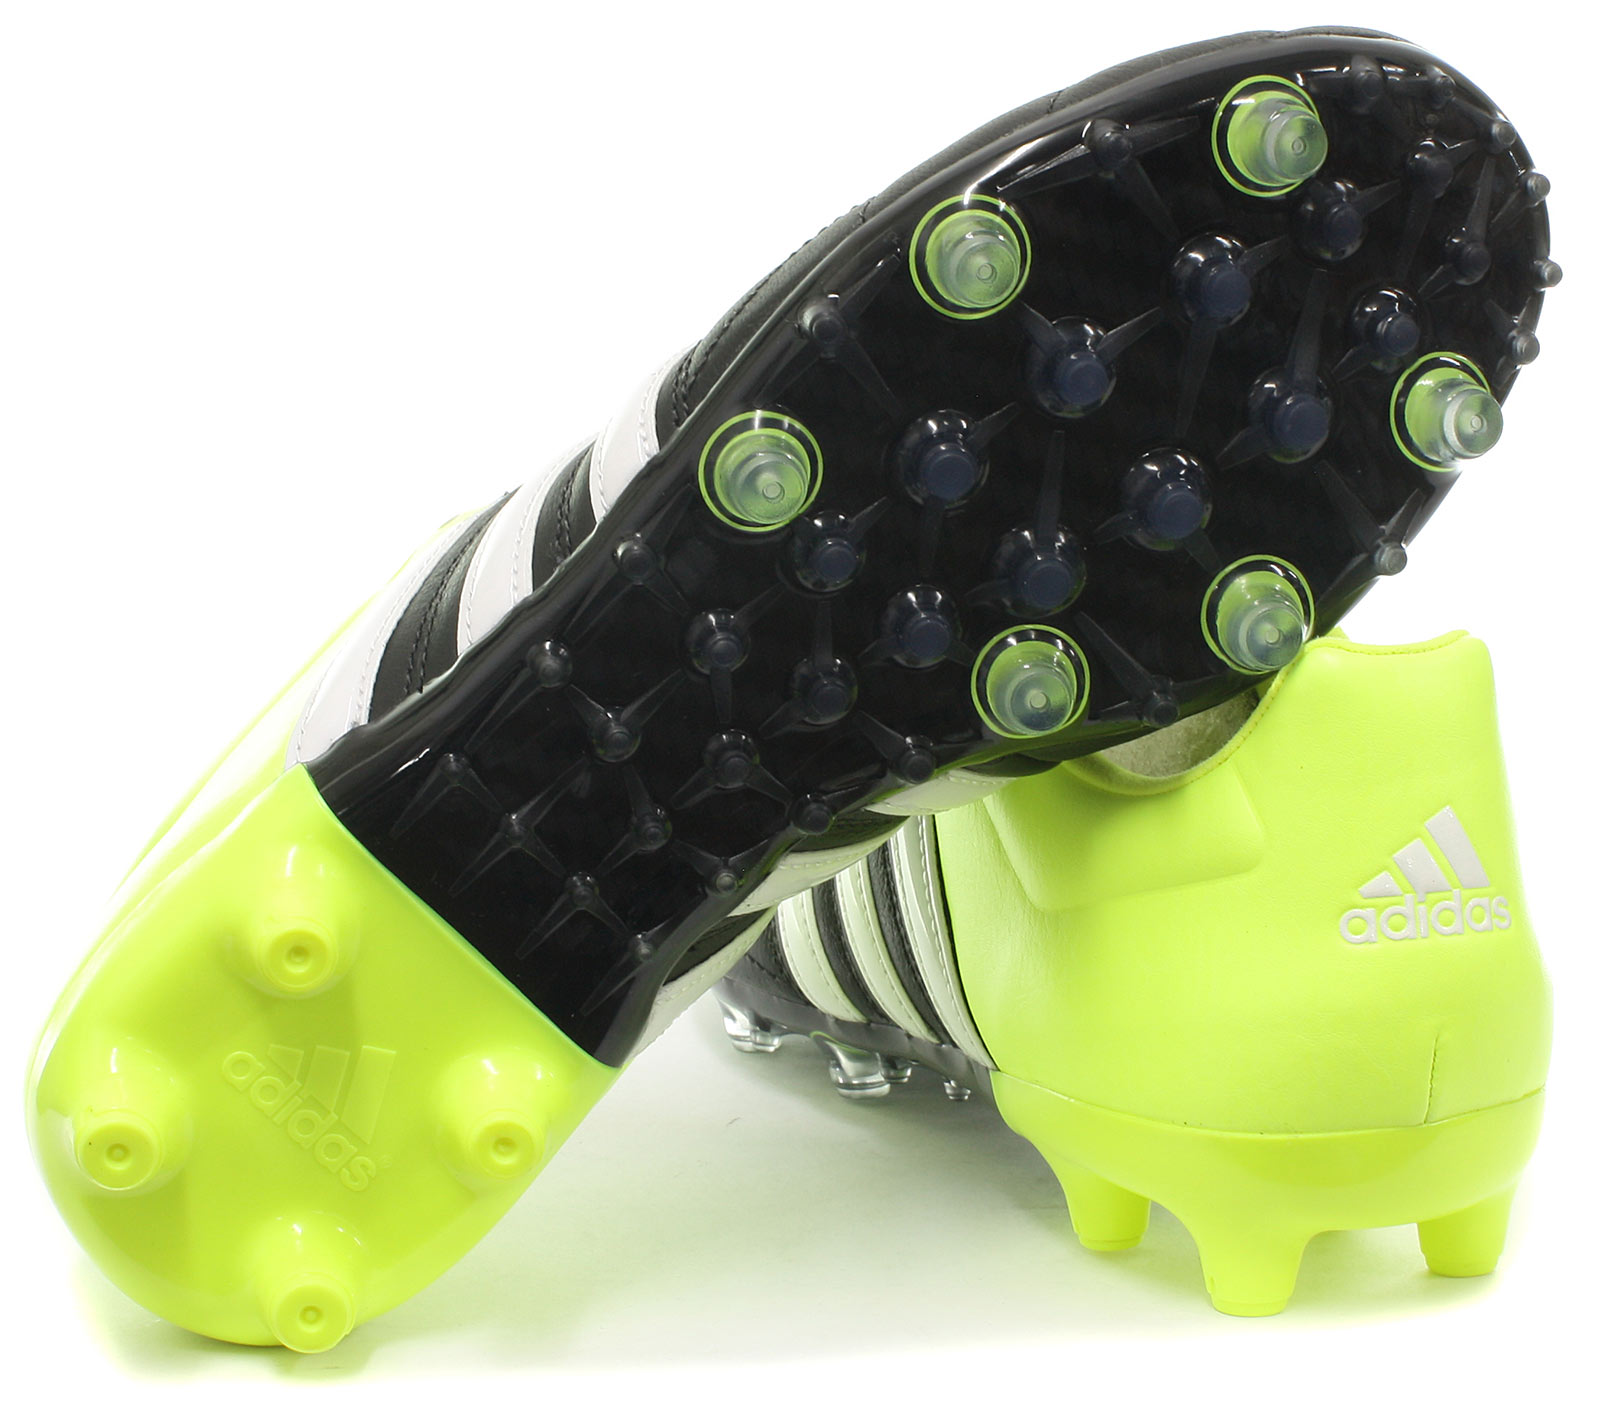 finest selection 22643 a32e7 ... reduced 2 di 6 adidas ace 15.2 fg ag leather mens football boots soccer  cleats all